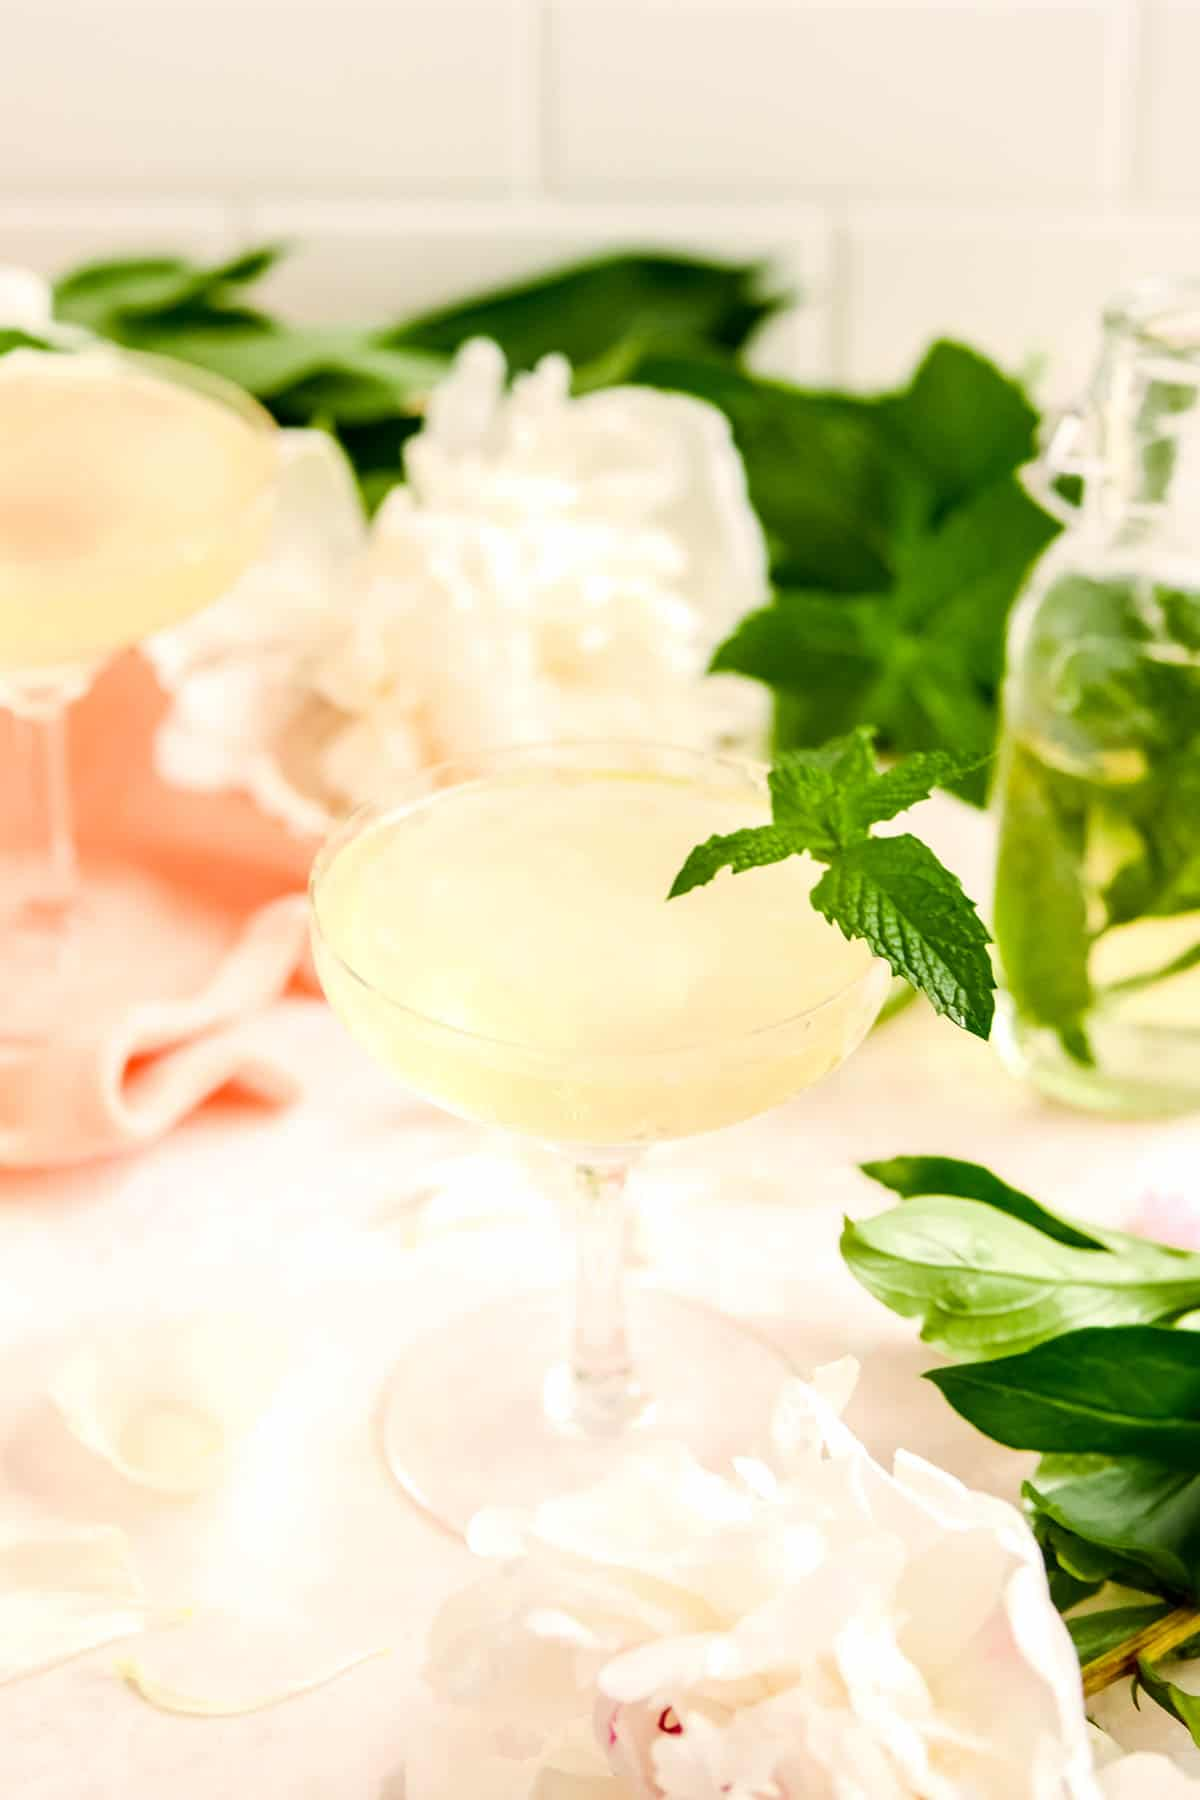 two coupe cocktail glasses from the side with a mint sprig in them and flowers on the table with a mint syrup bottle in the background.